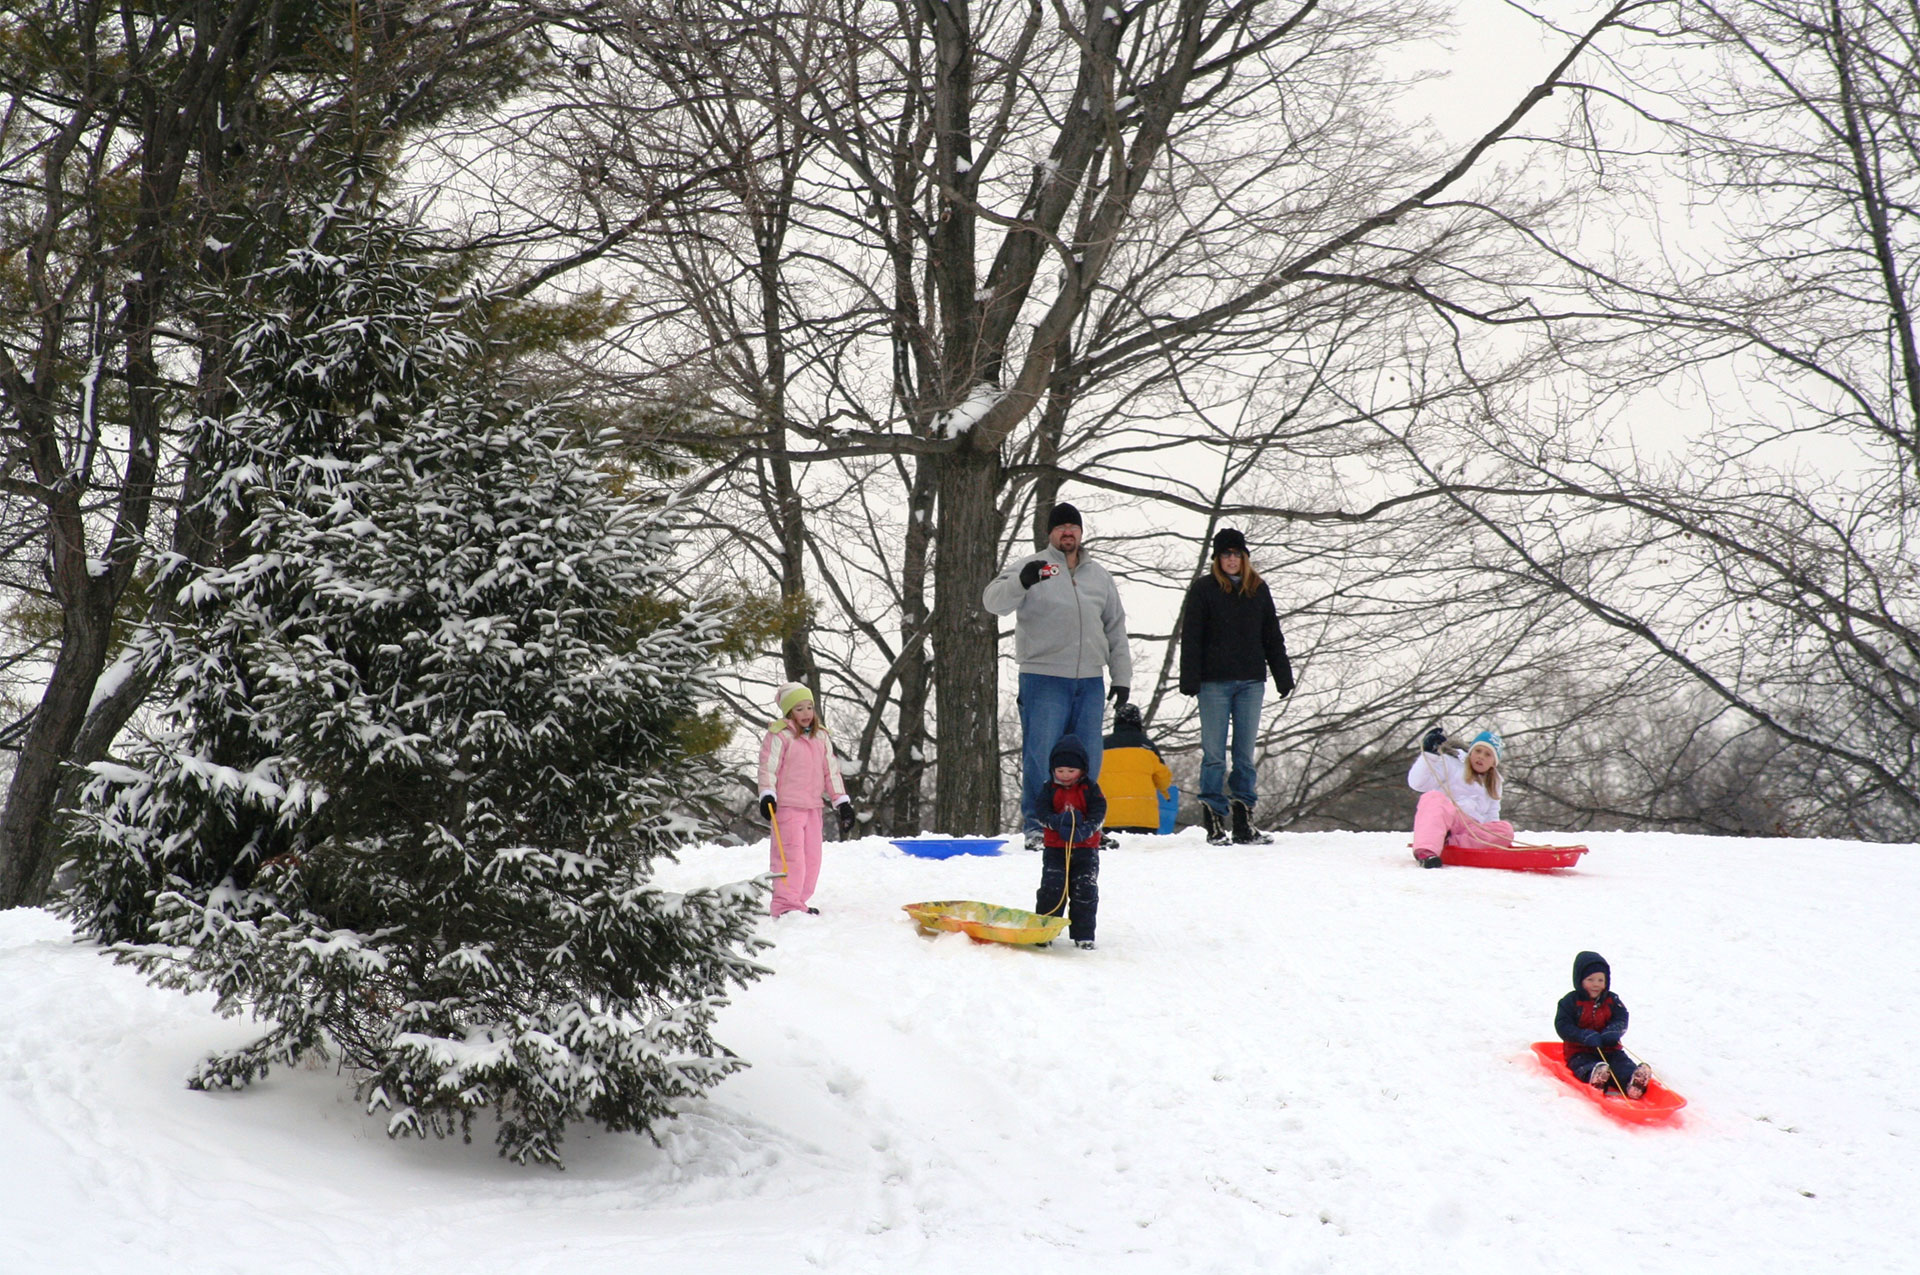 Thompson Park Sledding